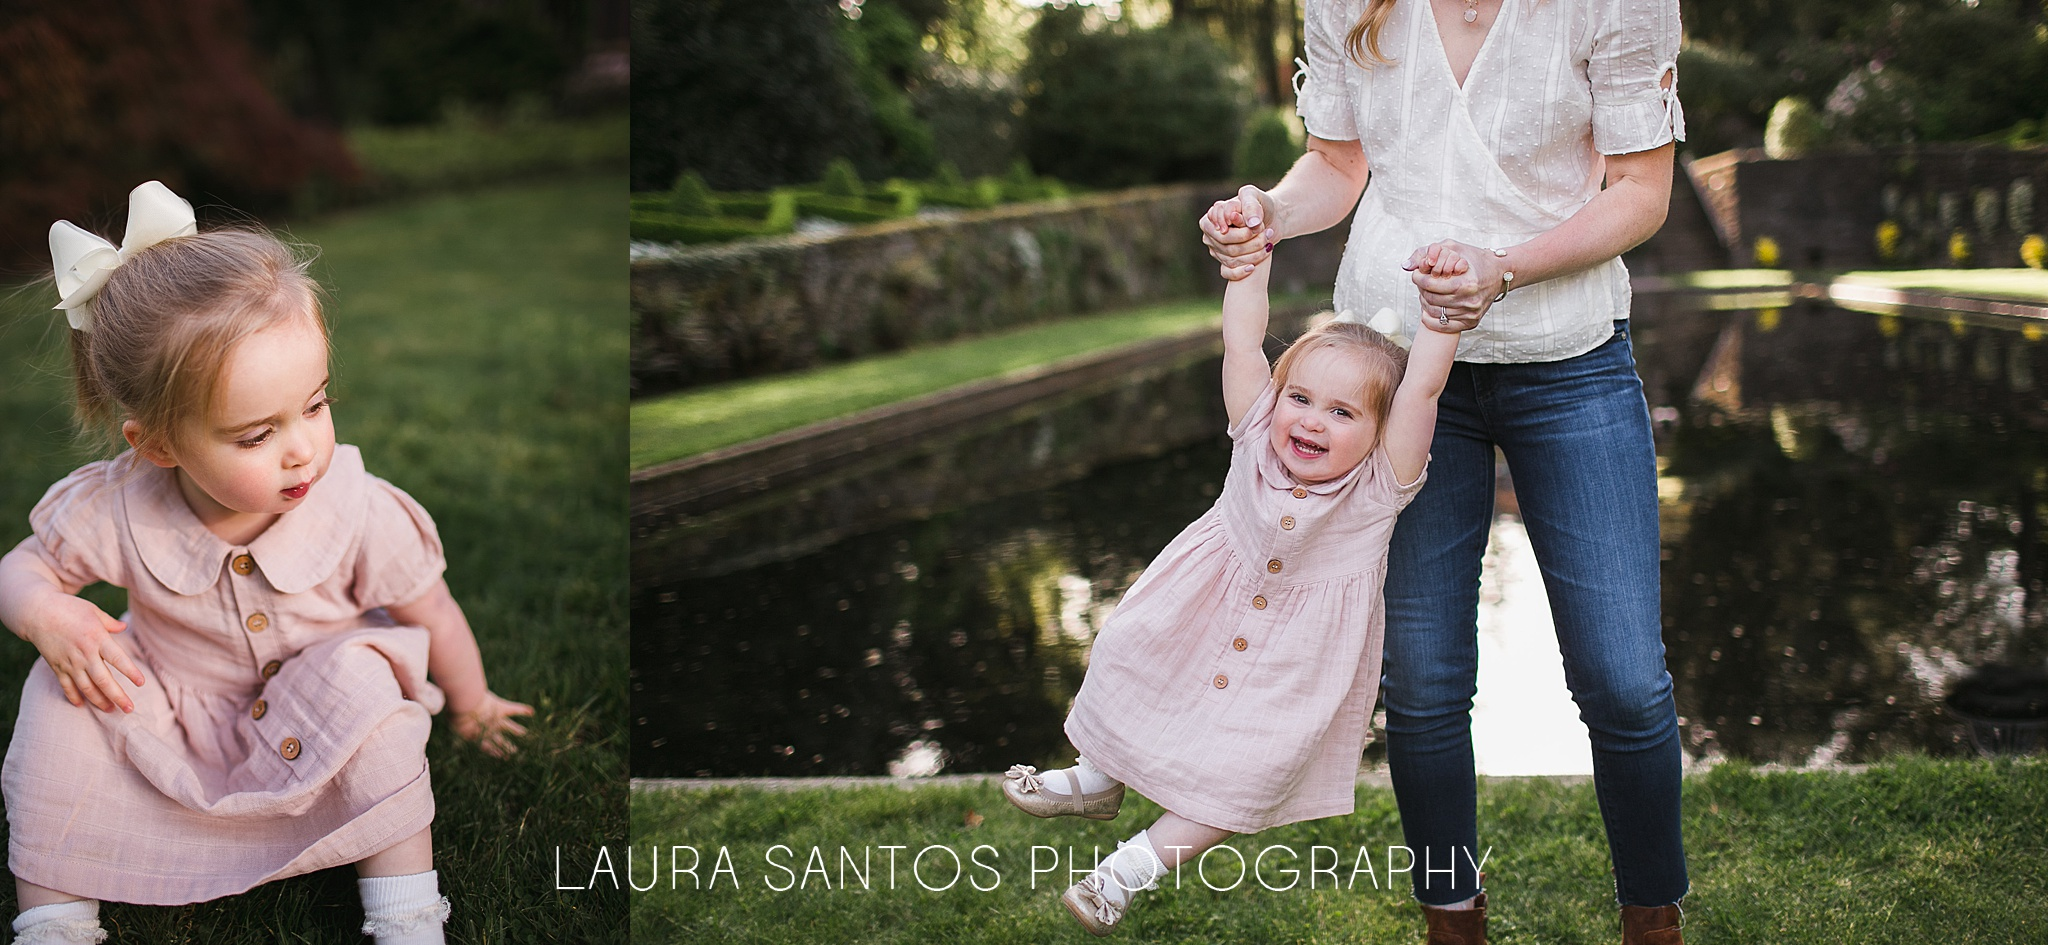 Laura Santos Photography Portland Oregon Family Photographer_0917.jpg